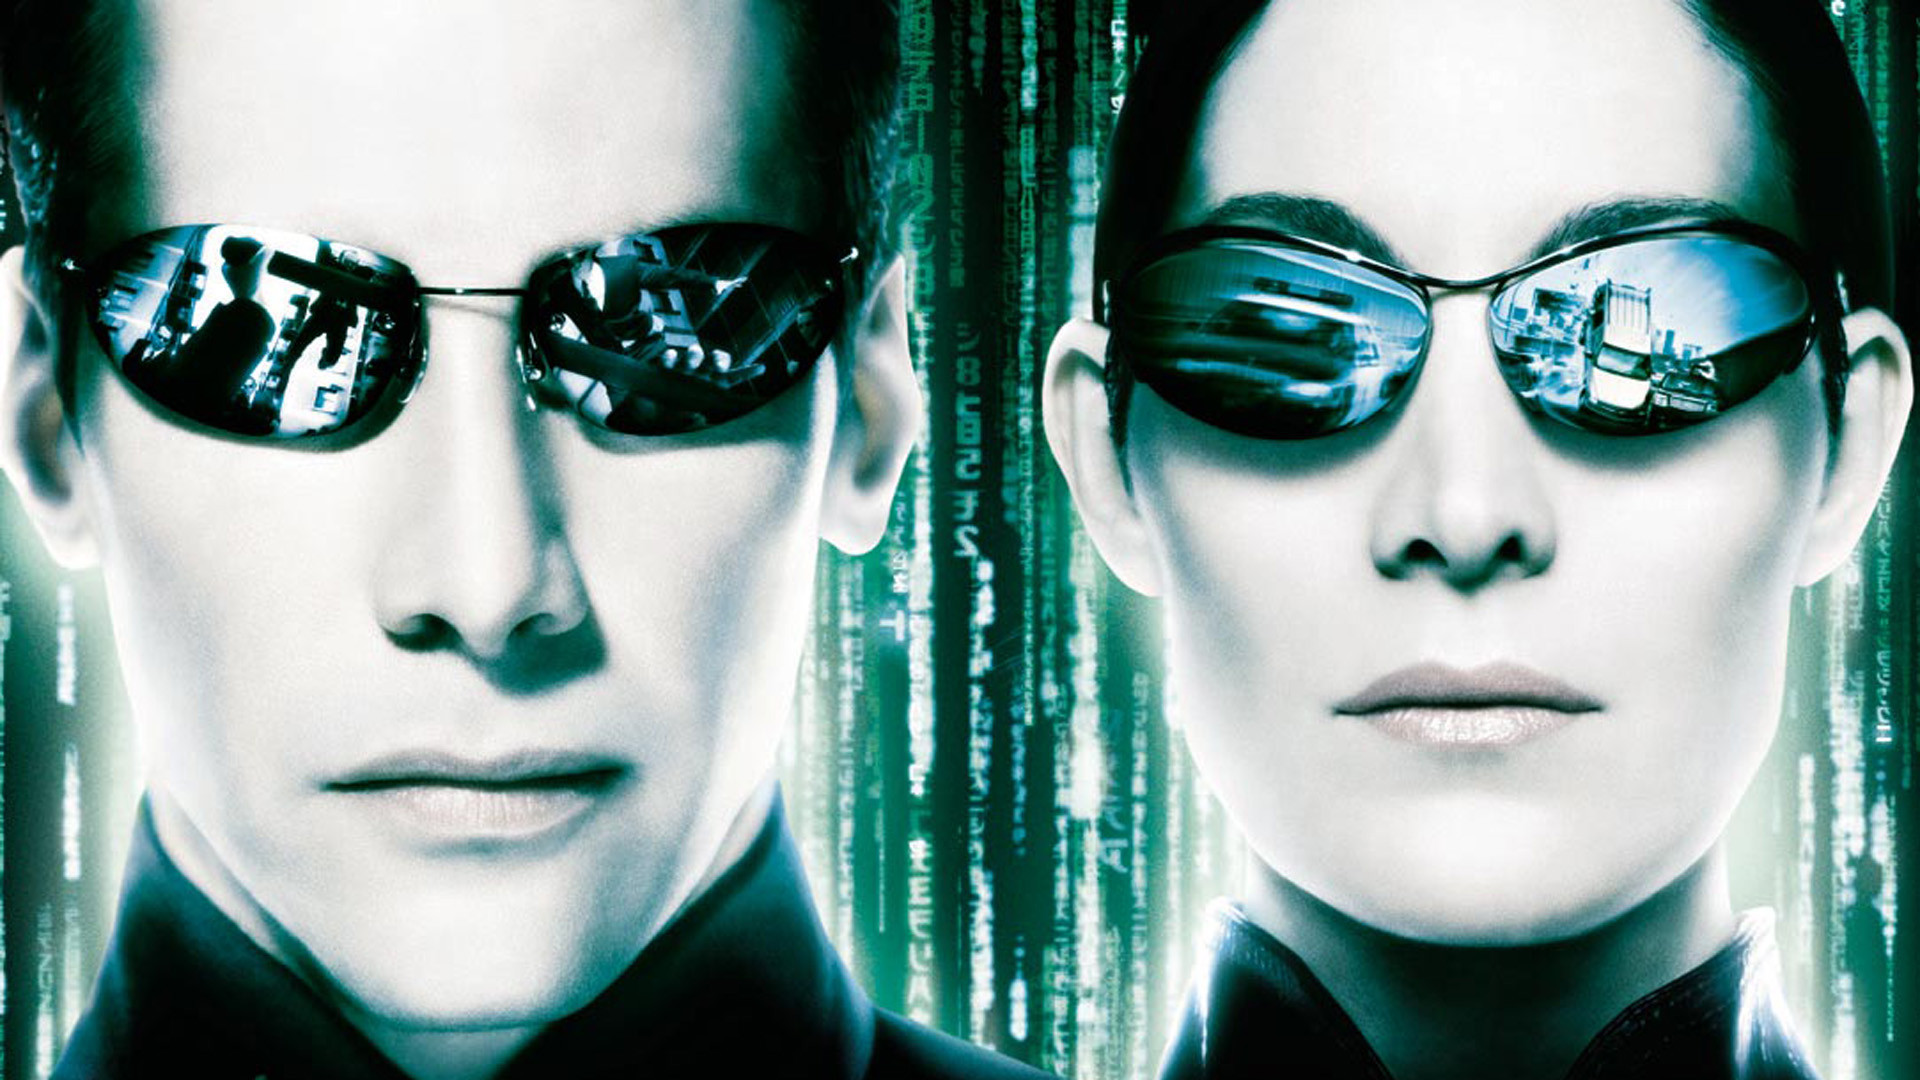 THE NATION OBSERVES THE MATRIX MEMORIAL DAY